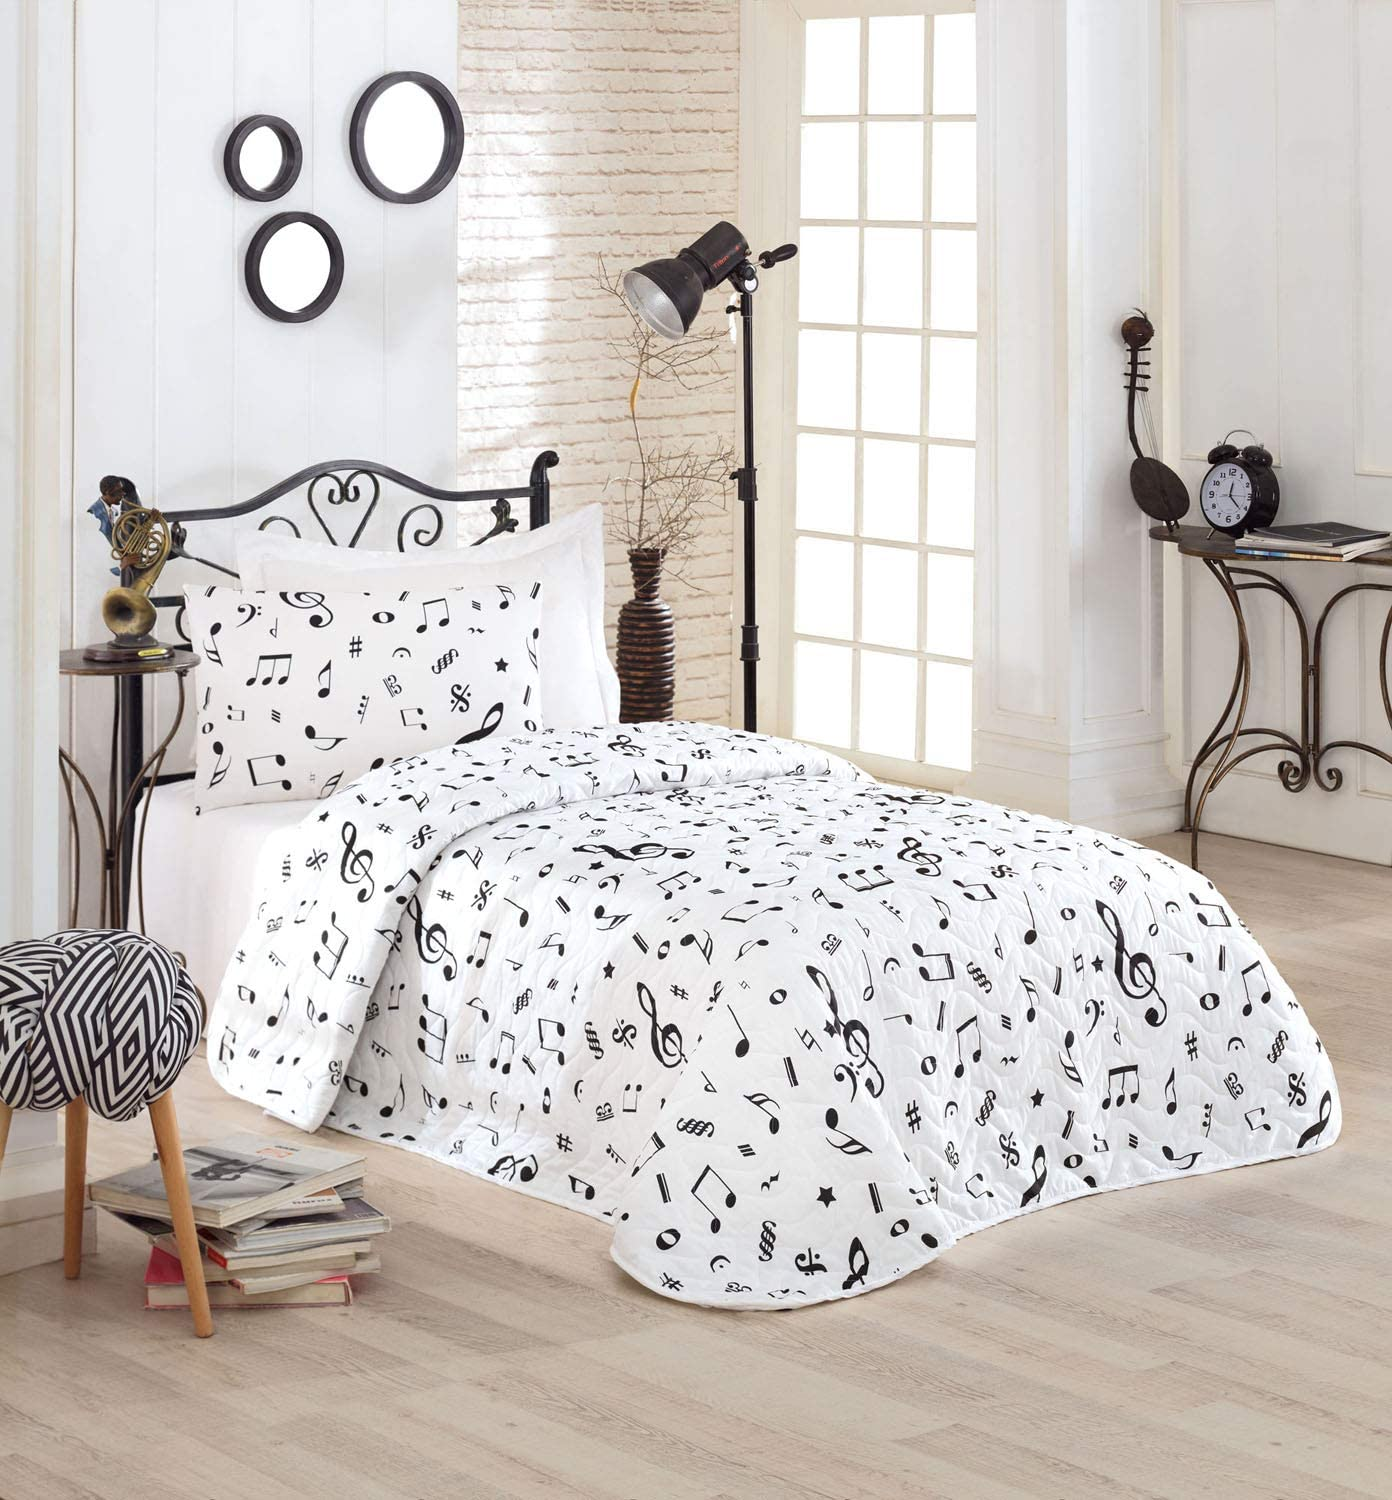 OZINCI Music Bedding Single Twin Coverlet Size M Credence Set Bedspread shopping